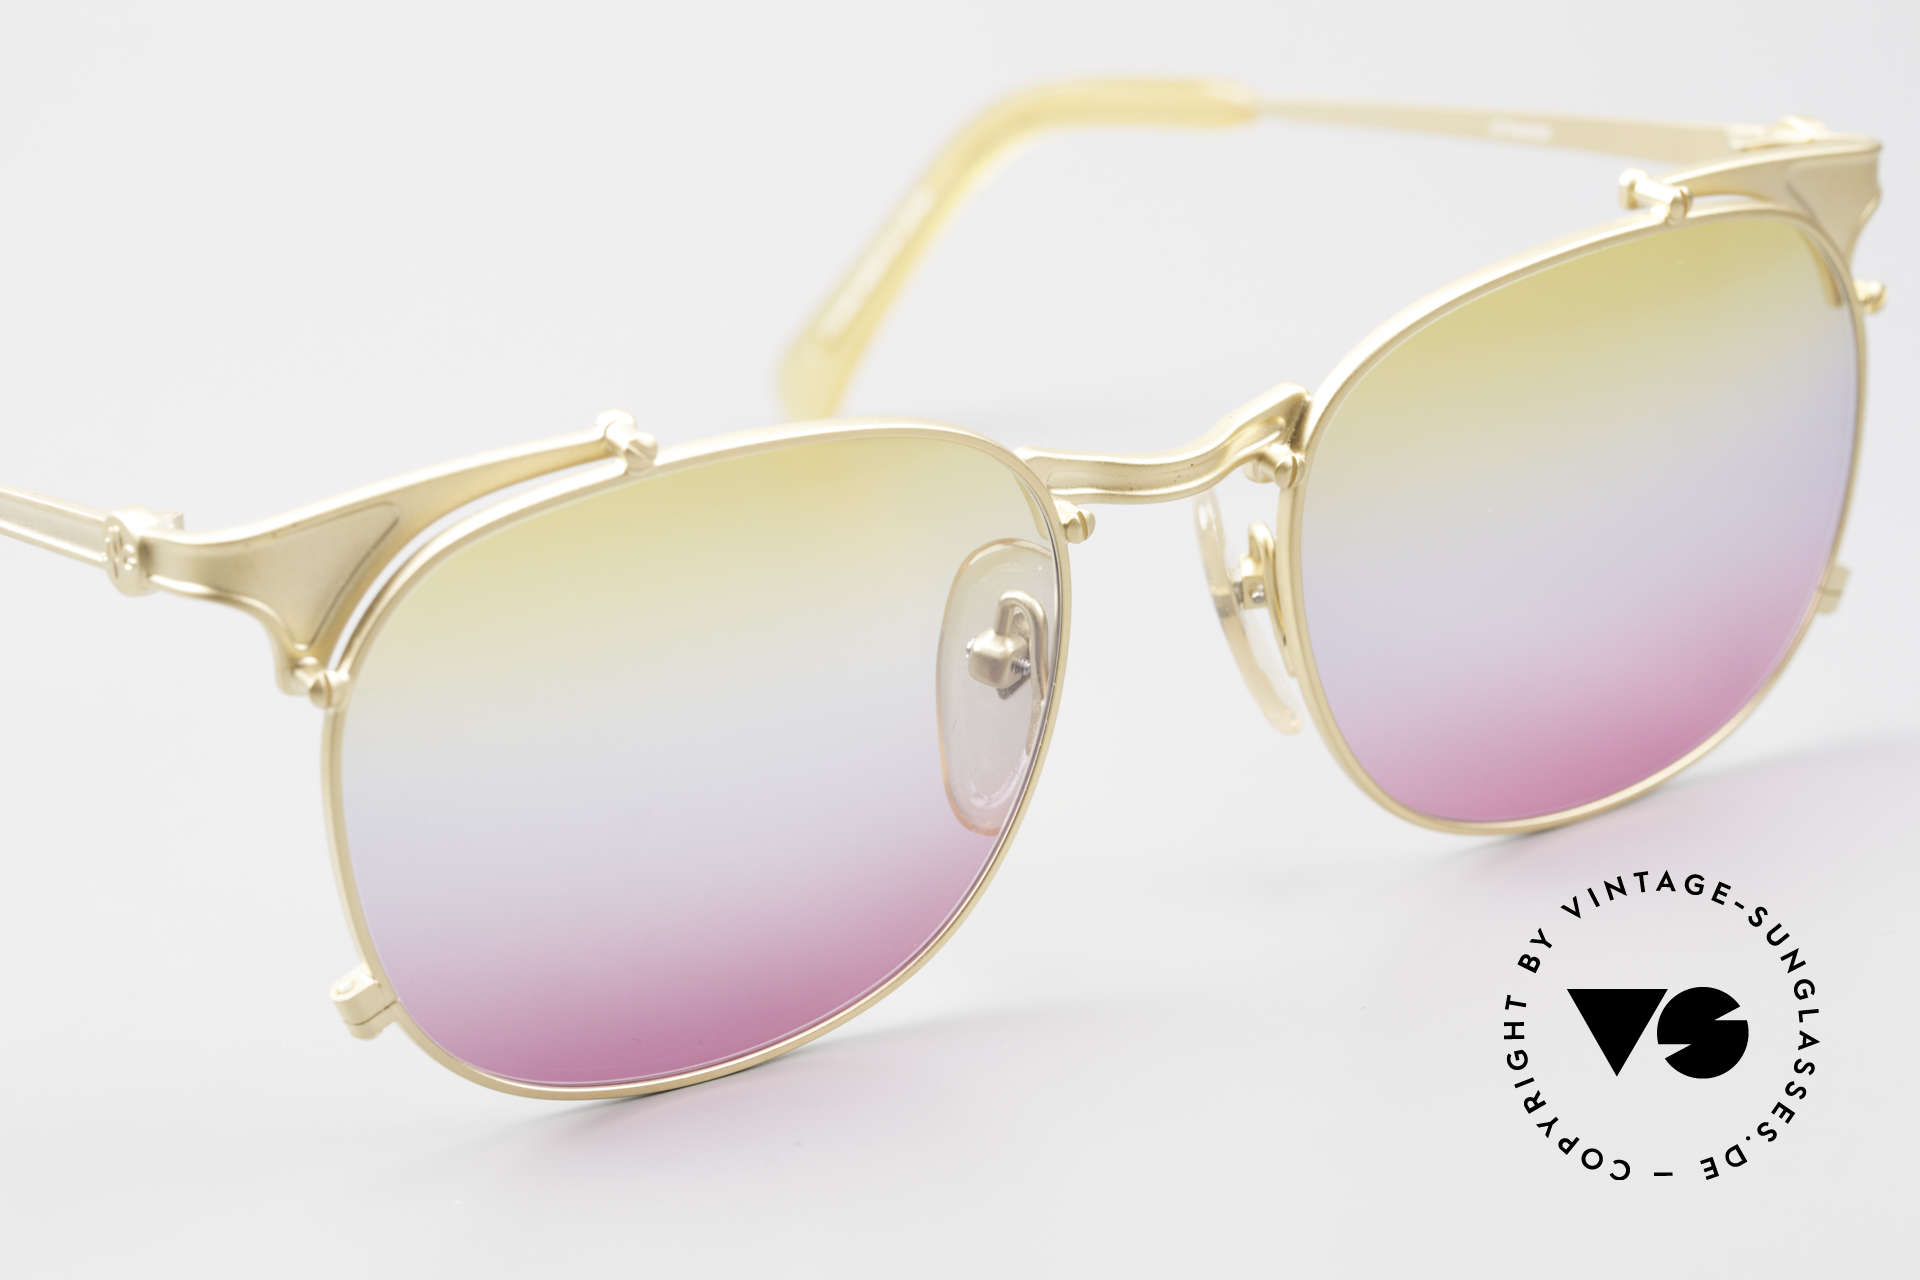 Jean Paul Gaultier 56-2175 Yellow Pink Gradient Lenses, unused (like all our Haute Couture sunglasses), Made for Men and Women